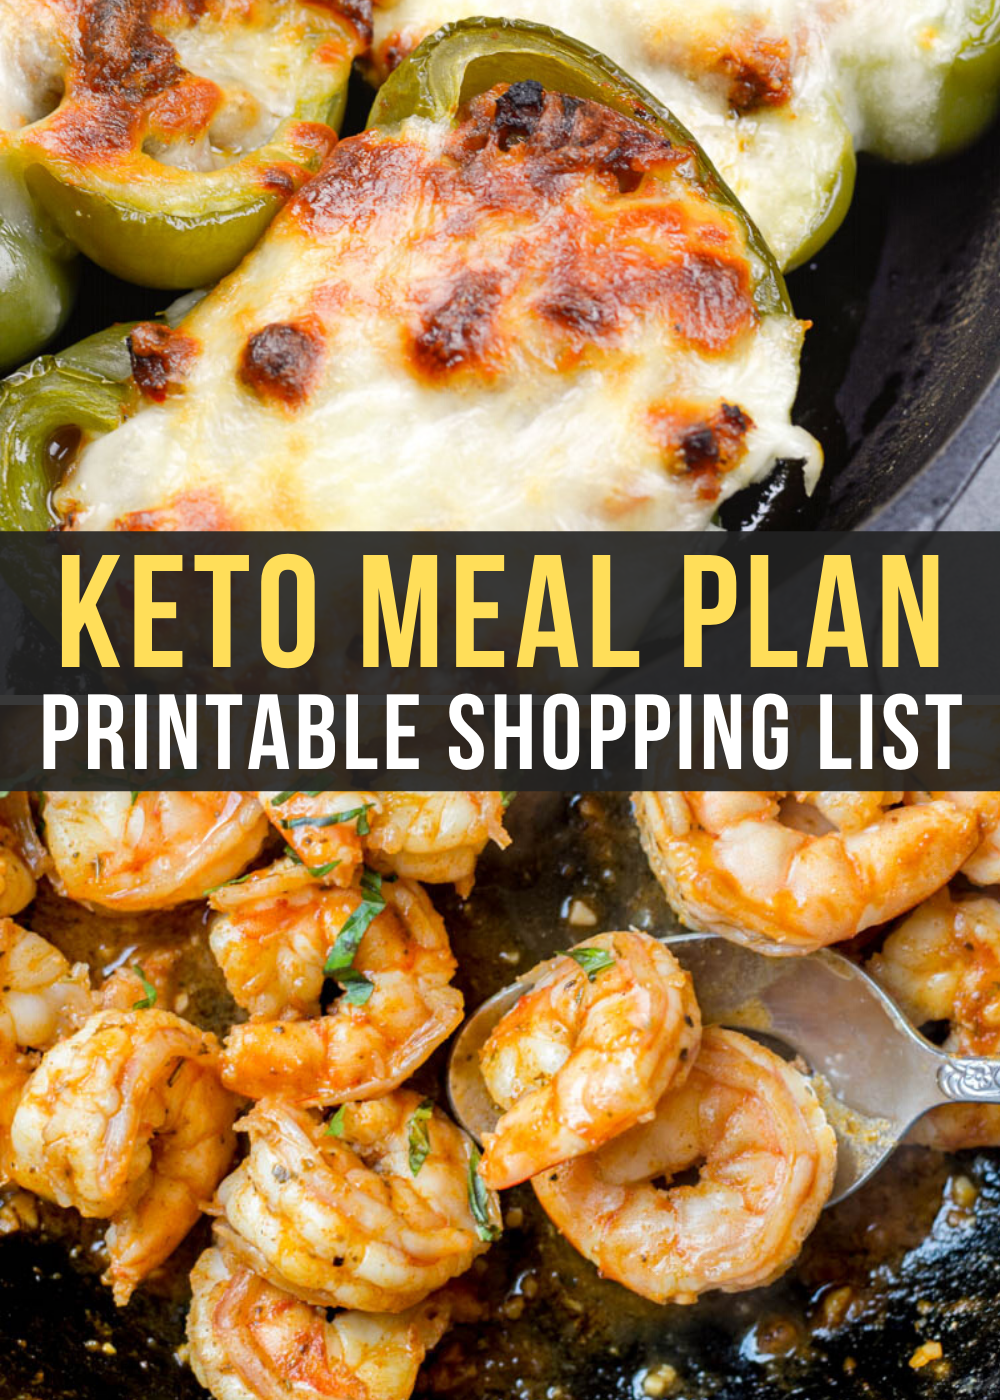 Curious about keto but not sure where to start? I can help! This Easy Keto Meal Plan includes 5 EASY low carb dinners plus a keto breakfast you can meal prep! This guide is complete with net carb counts and a printable shopping list.